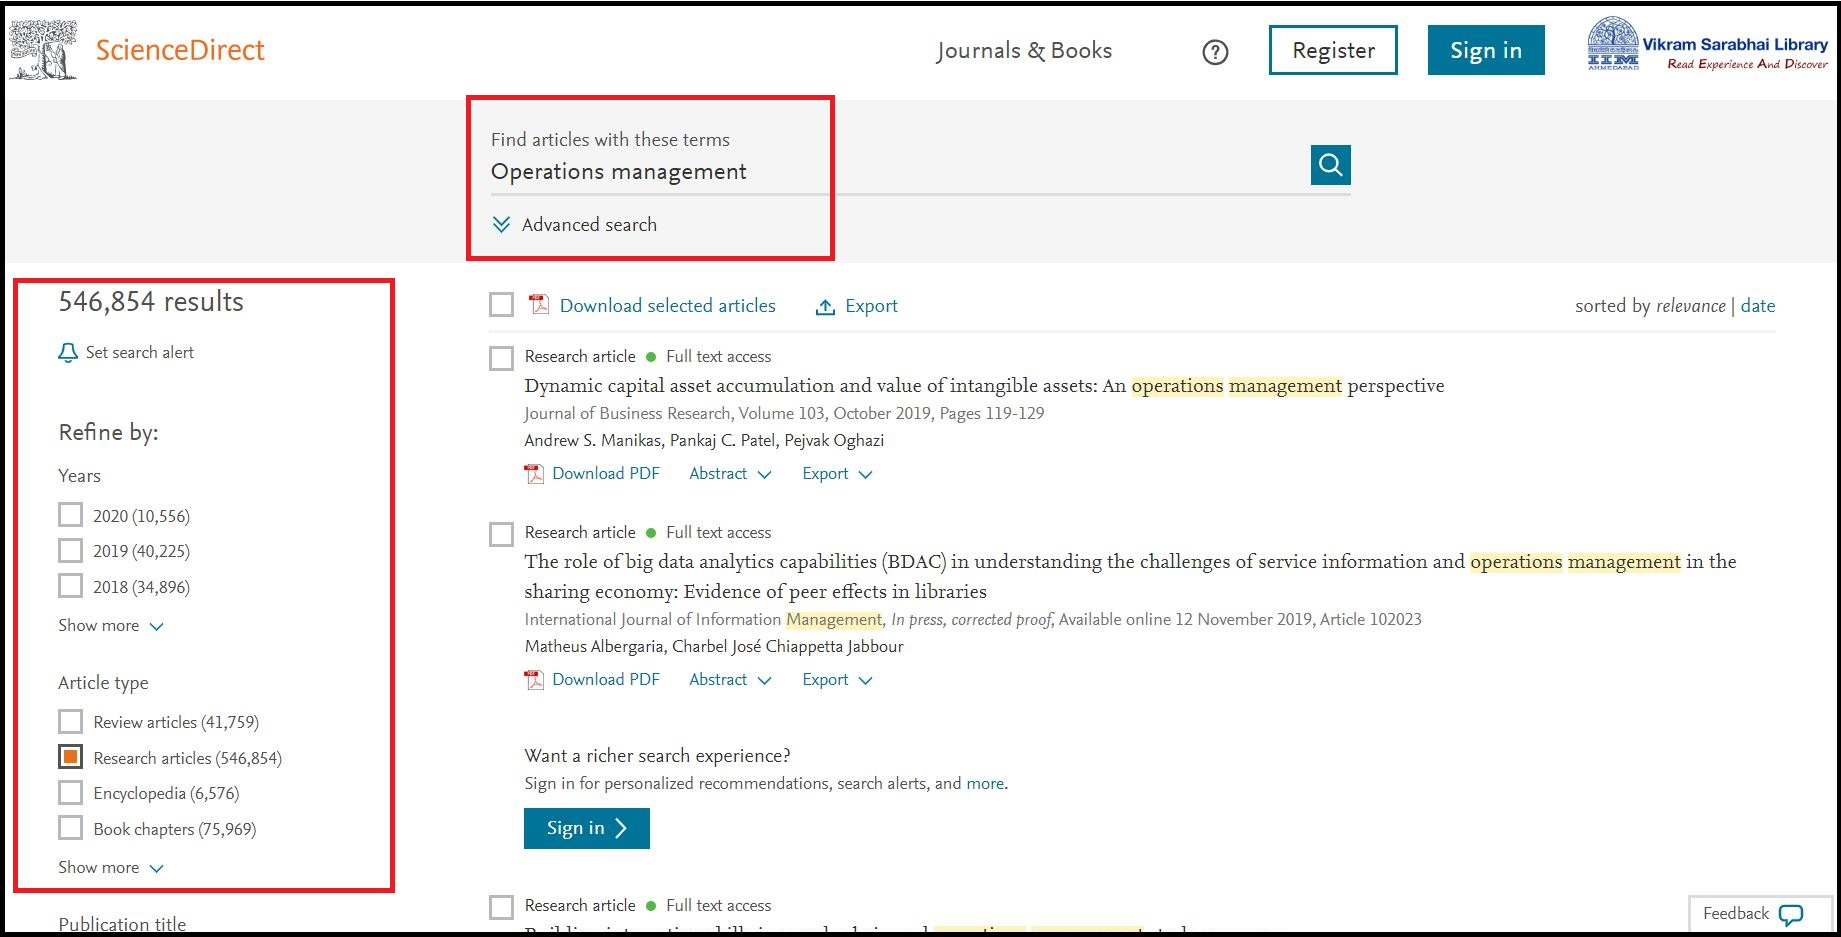 Open Science Direct (Elsevier) then Search for Required Subject and Click on Required Article Type